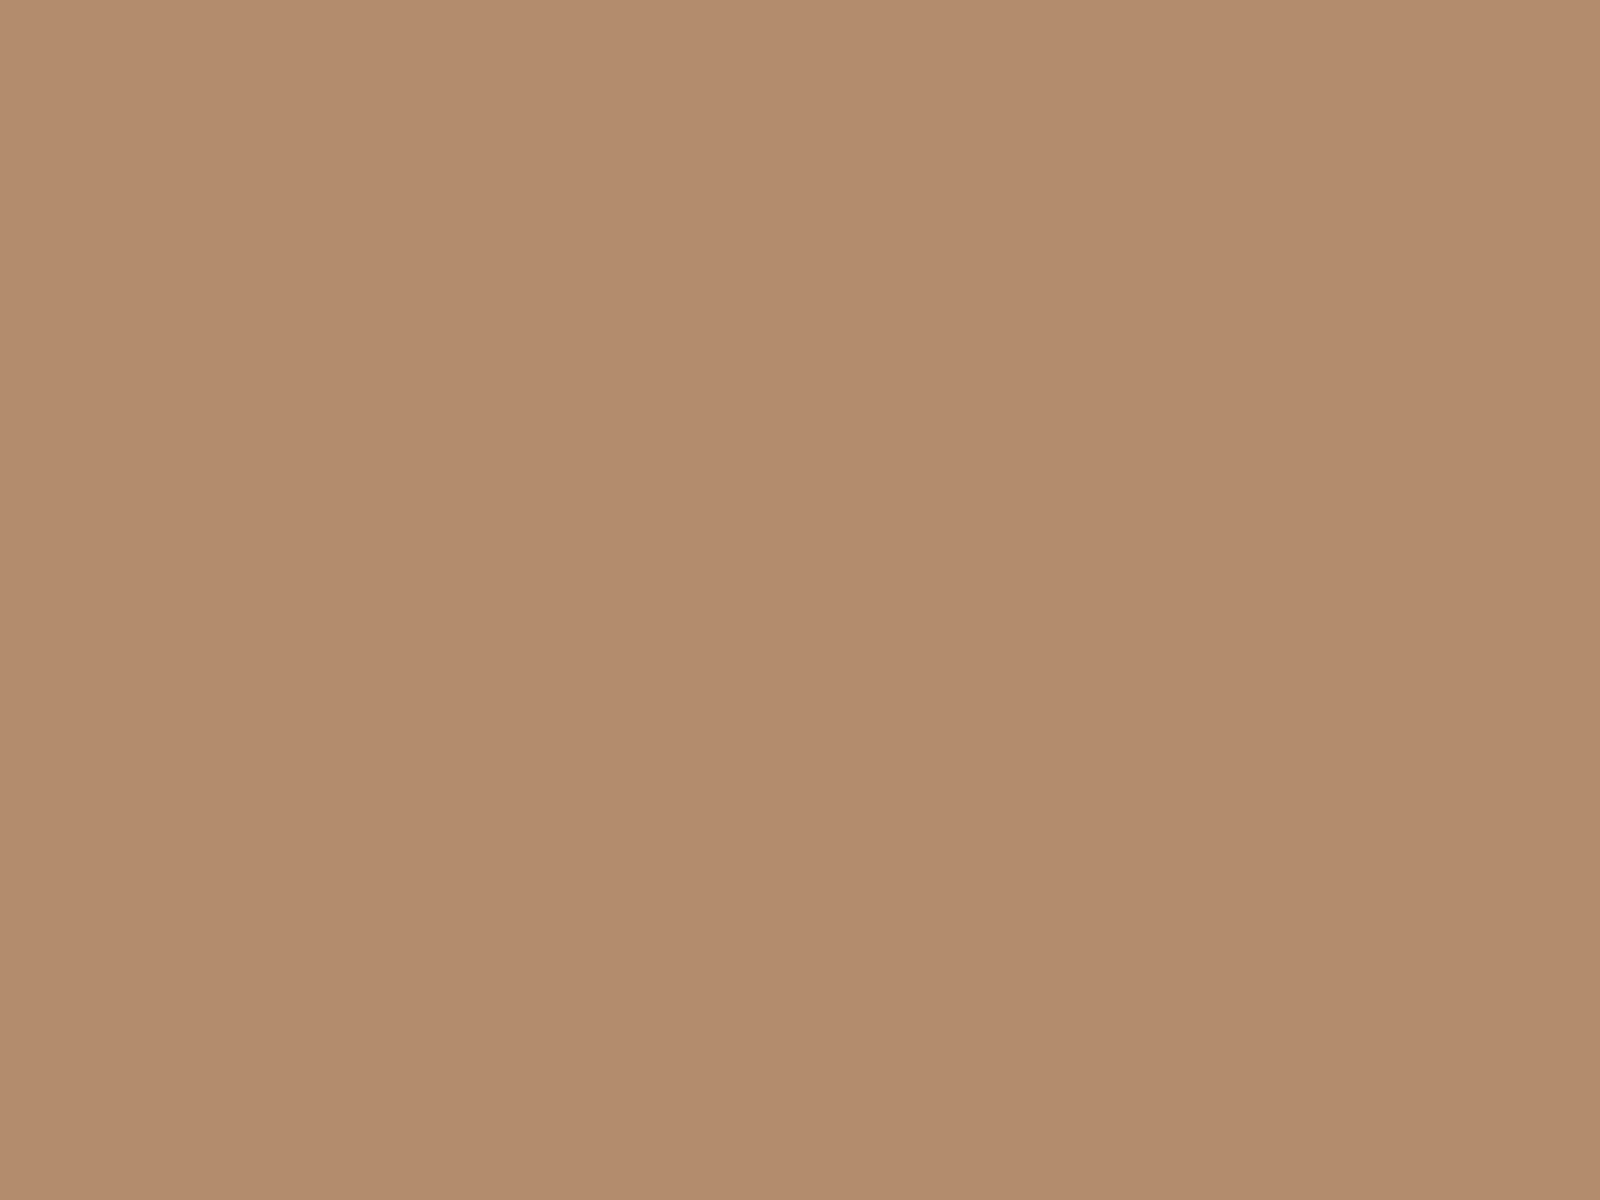 1600x1200 Light Taupe Solid Color Background